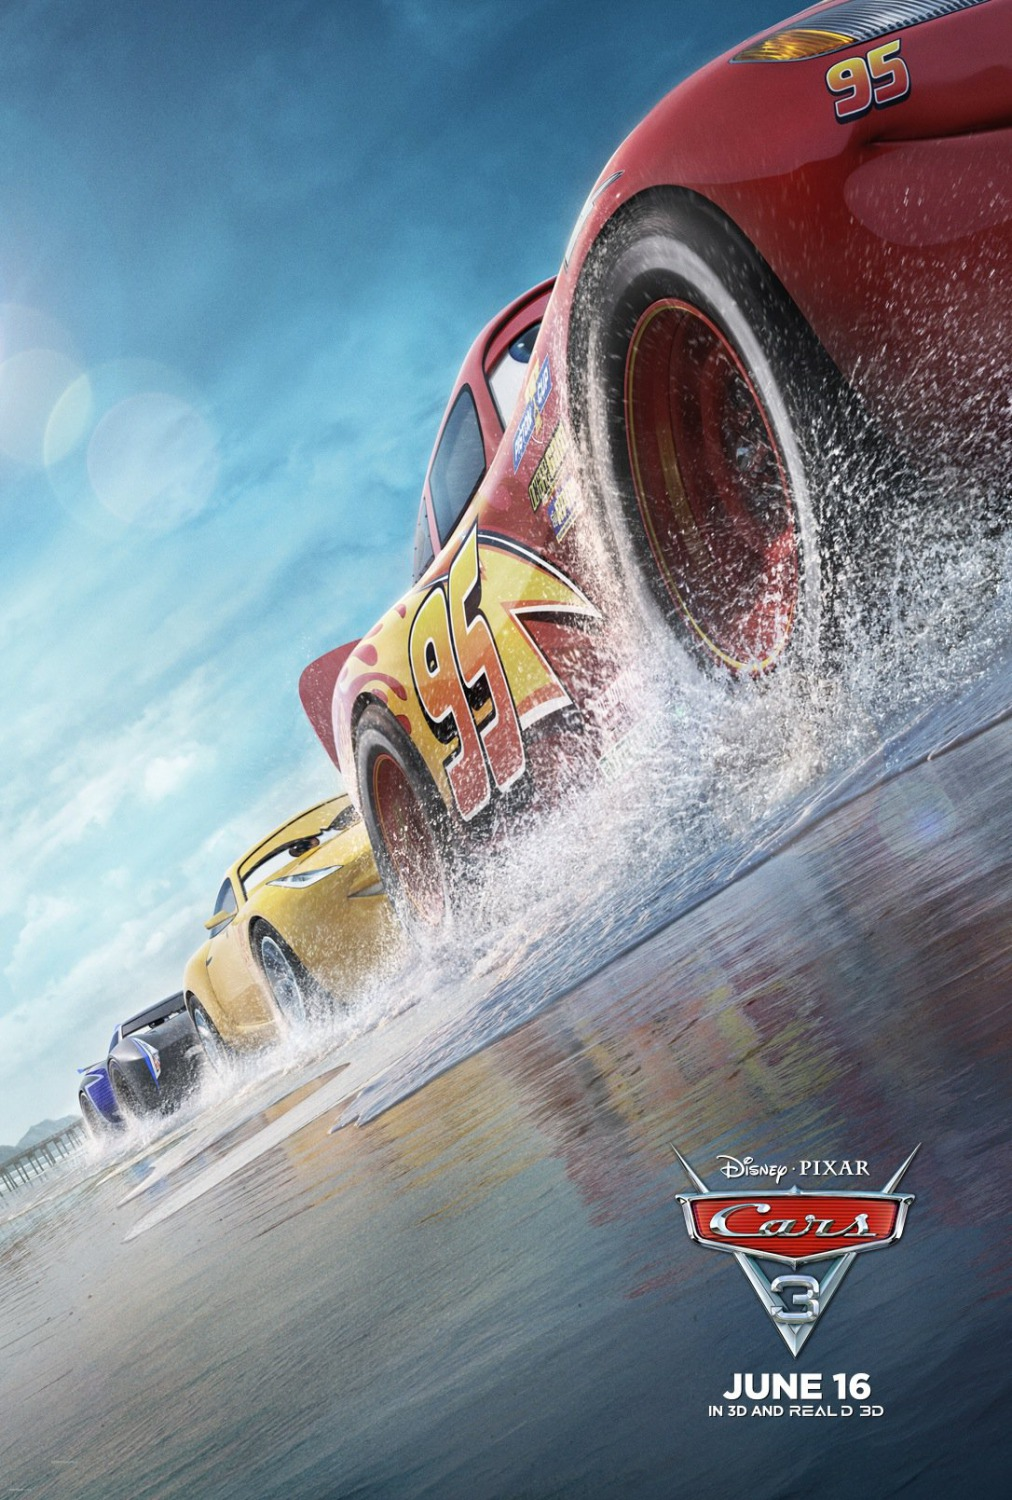 Cars 3 Movie Poster.jpg